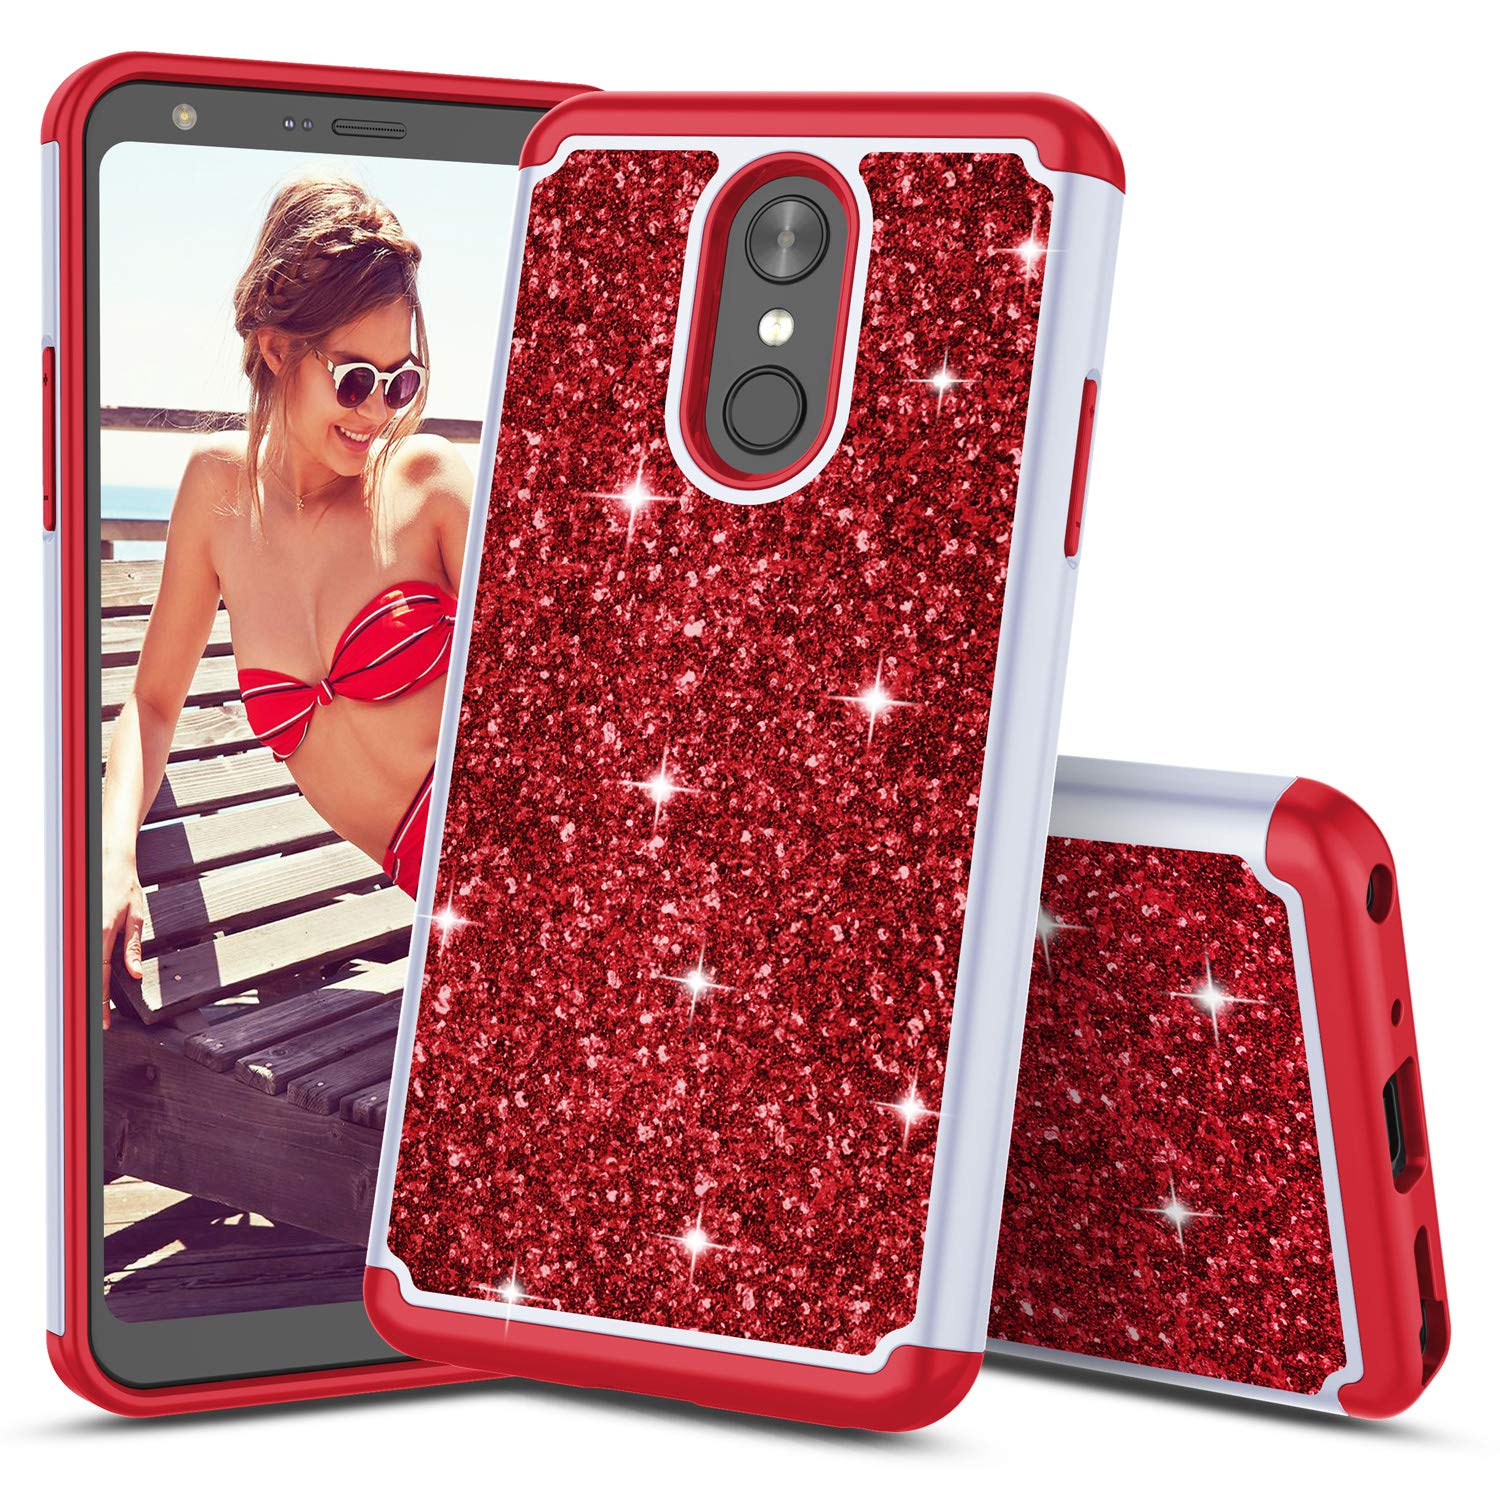 TILL for LG Q Stylo 4 Case, TILL Luxury [Sparkle Sequins] LG Stylo4 Plus Bling Shiny Color Glitter Fashion Case Dual Layer TPU Soft Inner Hard PC Protective Cute Case Cover Shell for LG Q Stylus [Red]